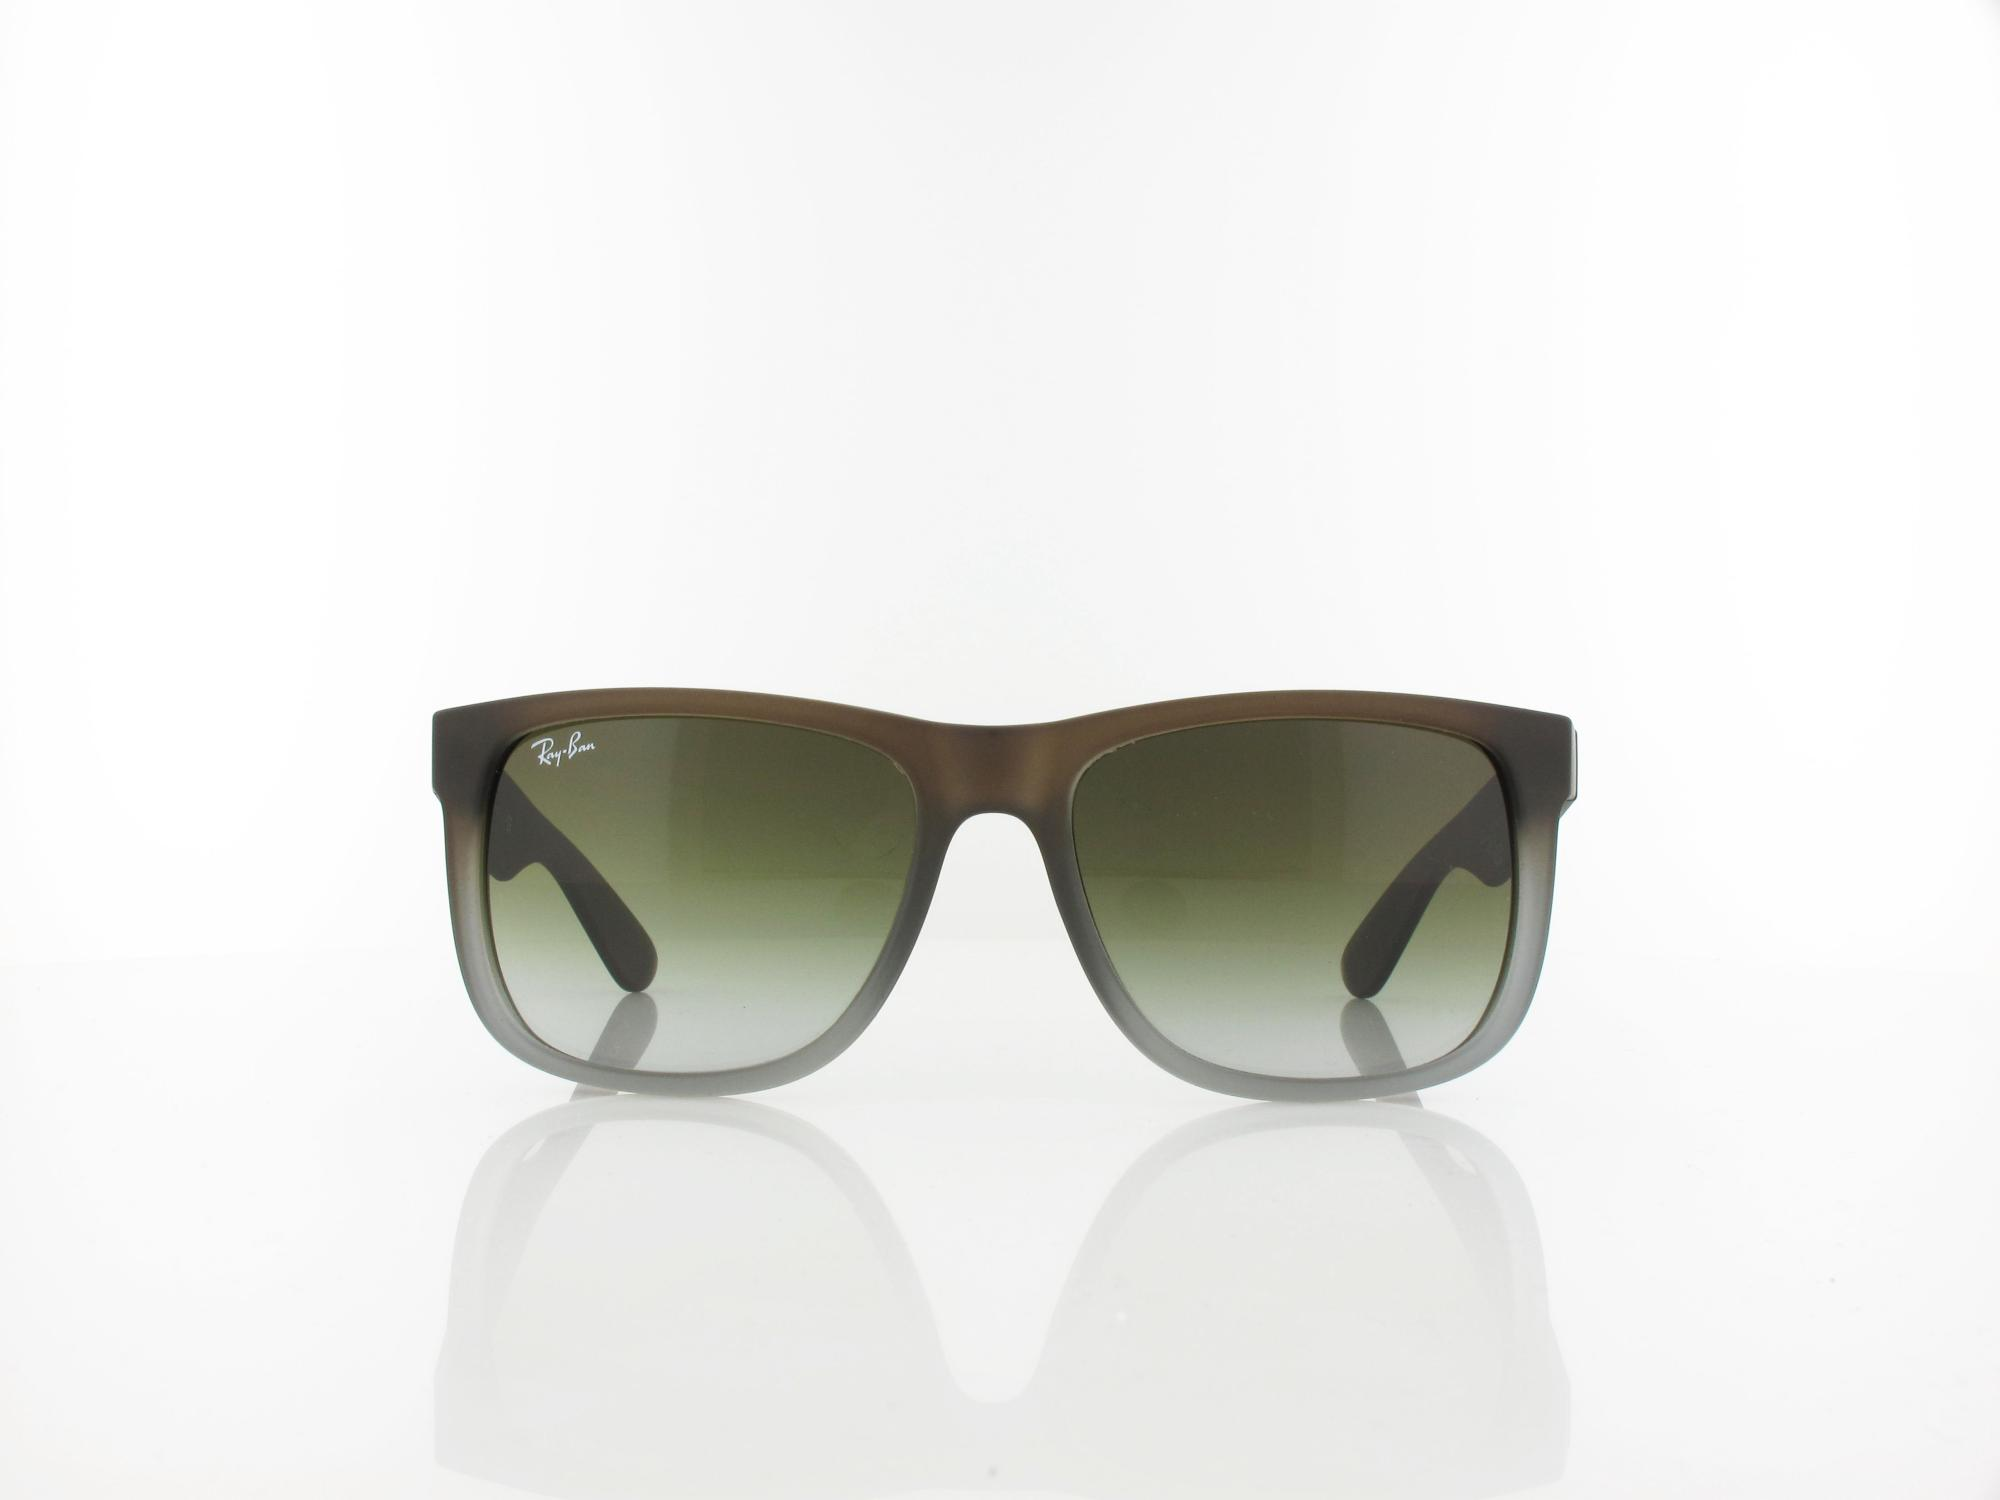 Ray Ban | Justin RB4165 854/7Z 54 | rubber brown on grey / green gradient